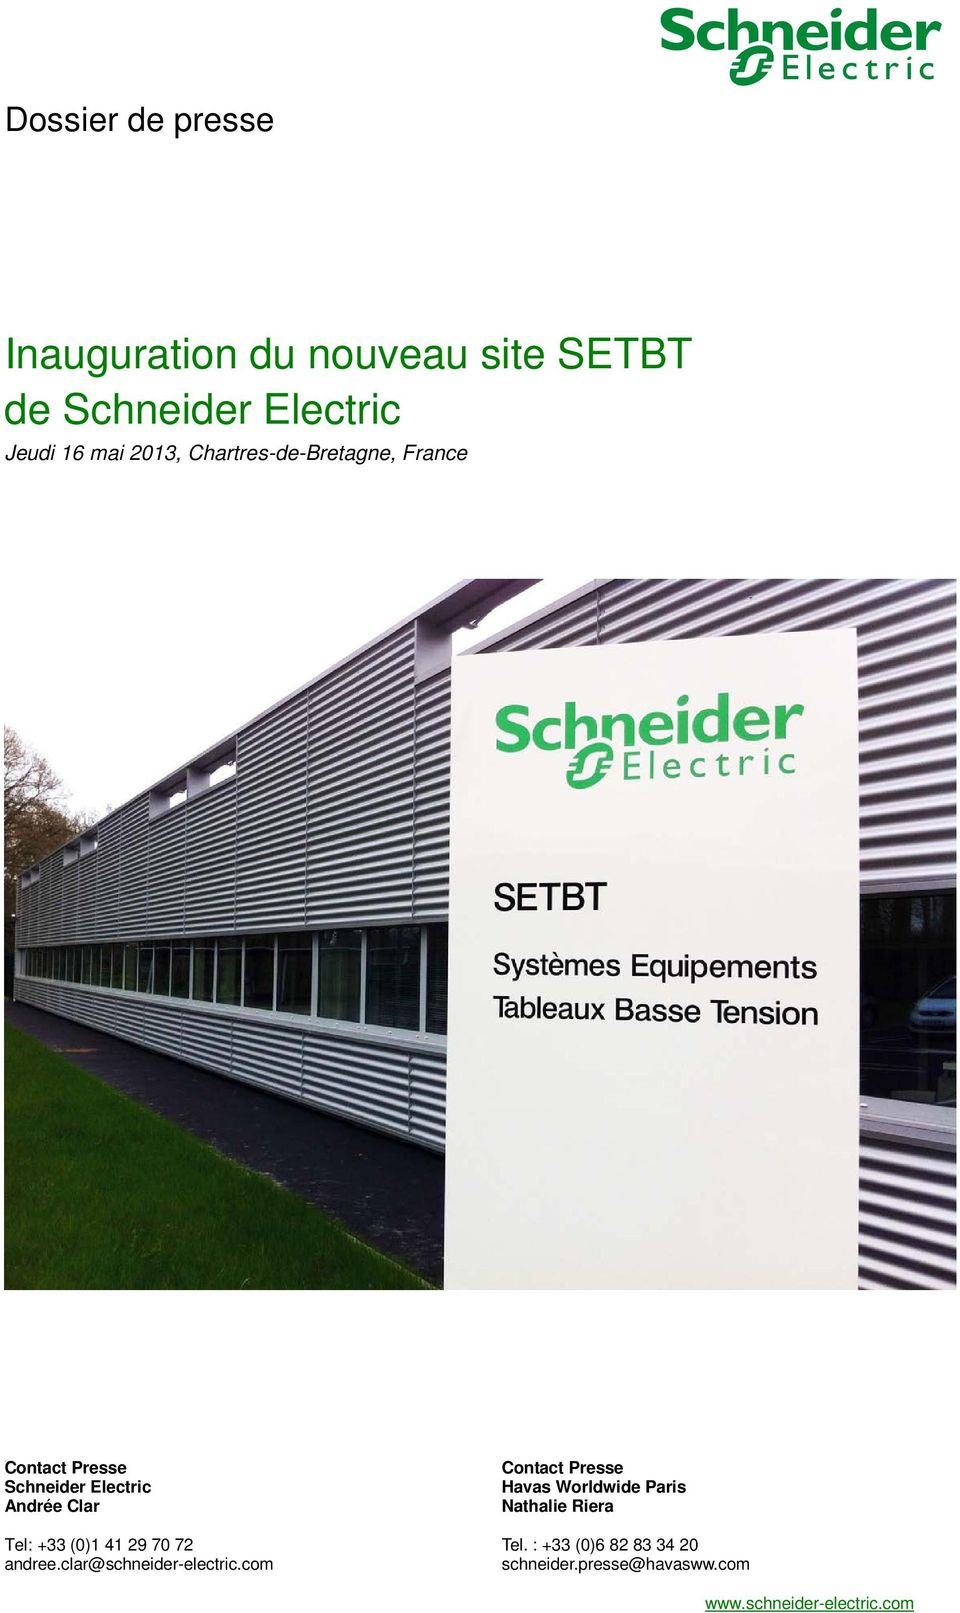 andree.clar@schneider-electric.